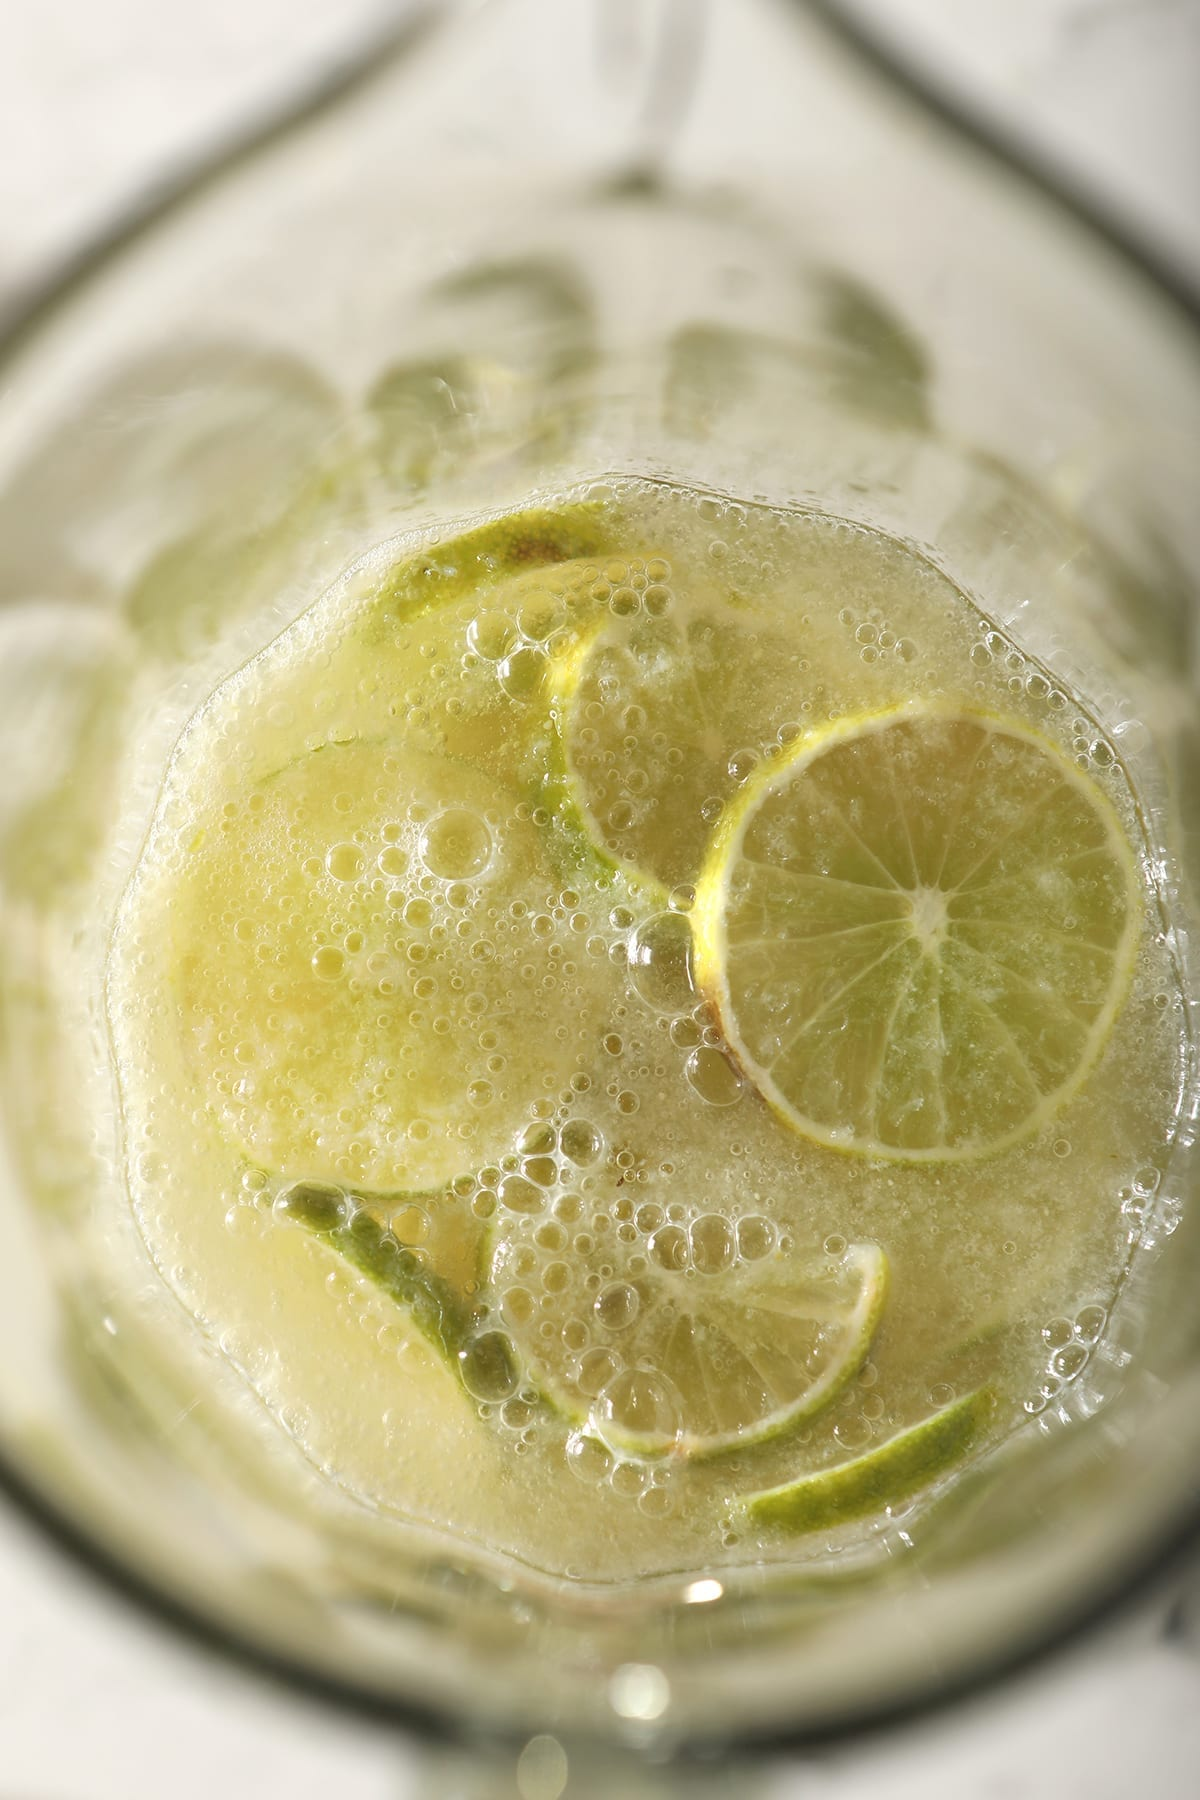 Close up of lime rounds and ingredients for a Moscow Mule pitcher